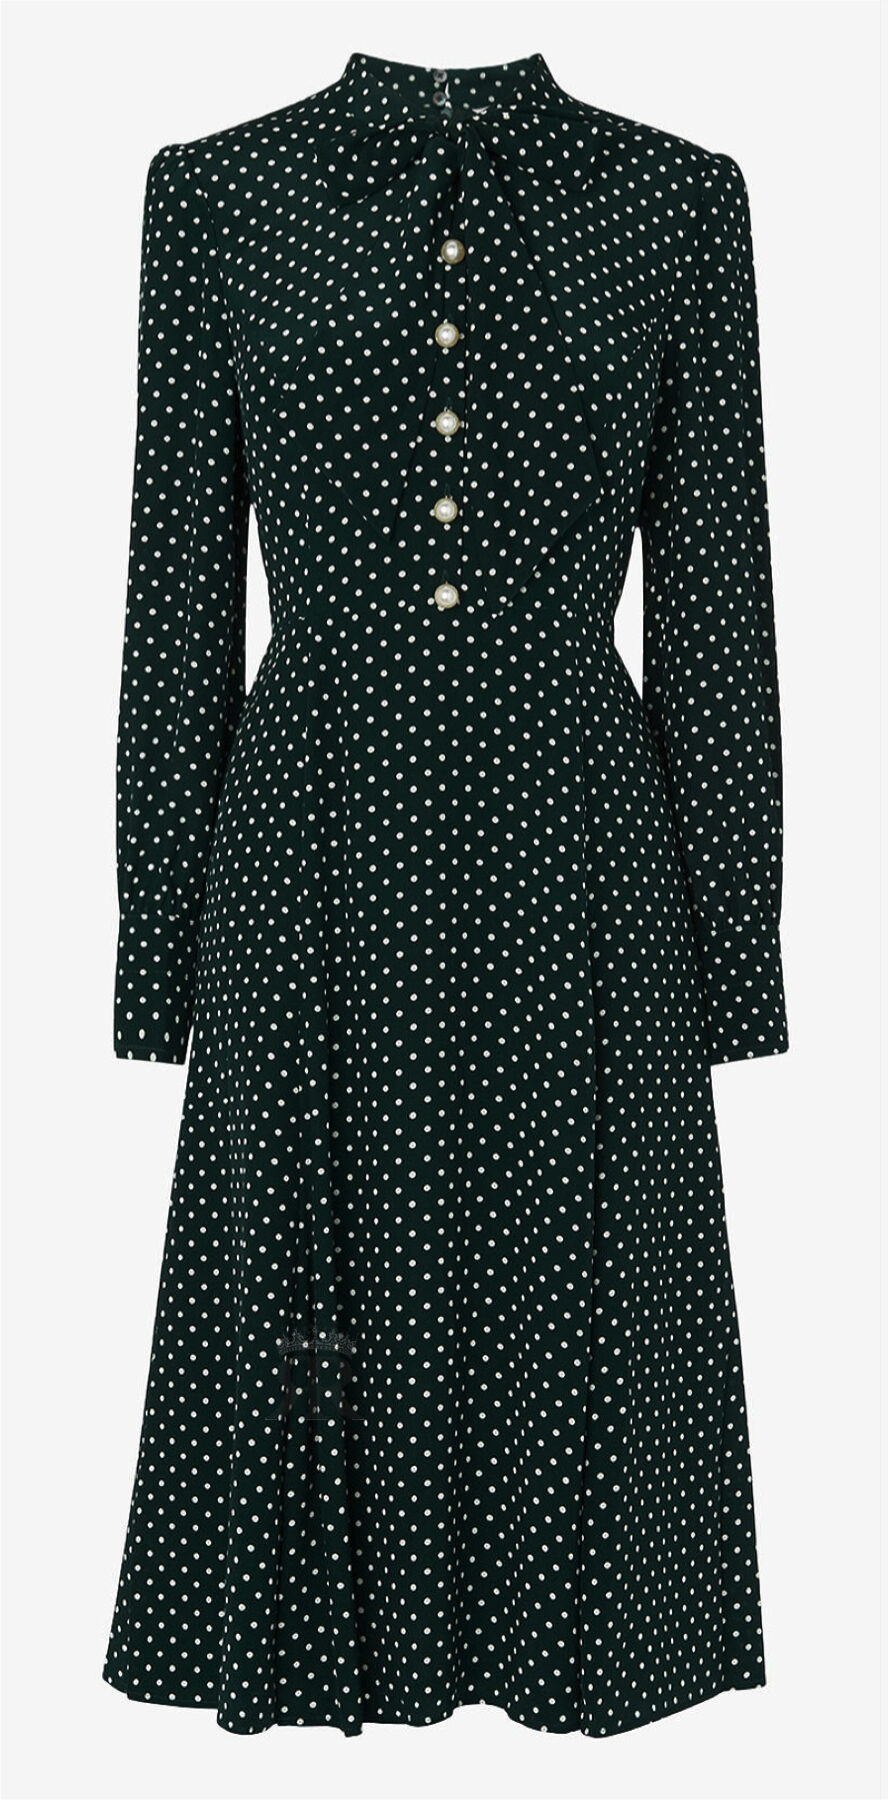 LK Bennett Mortimer Green Polka Dot Silk Dress